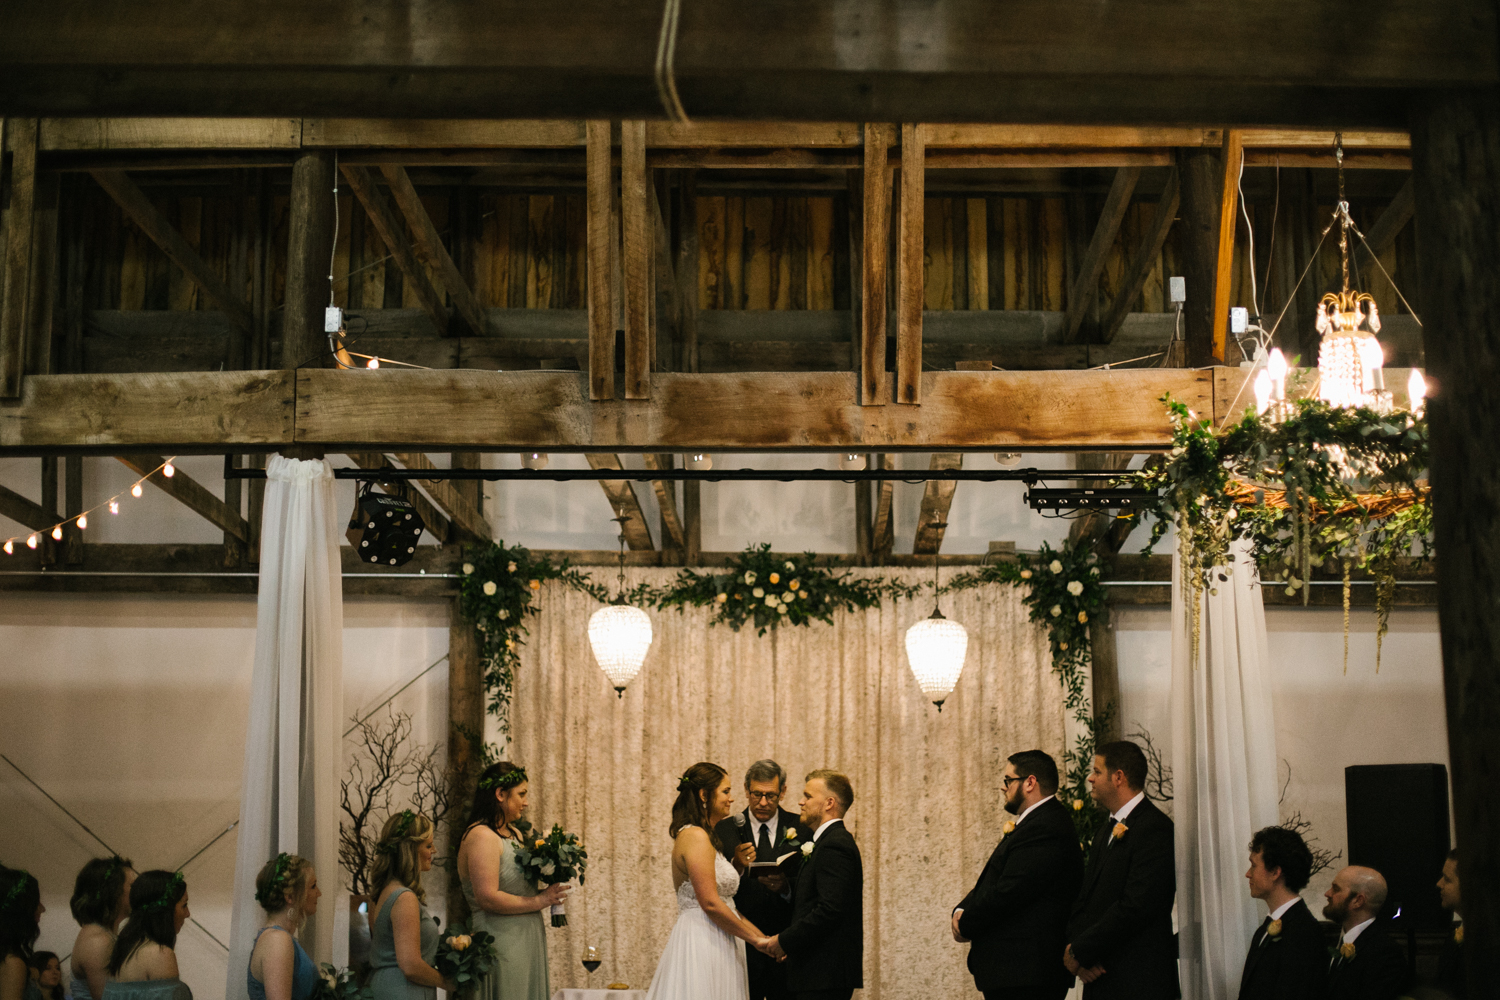 2018.05.05_SarahDillon_Wedding_Starks-0034.jpg